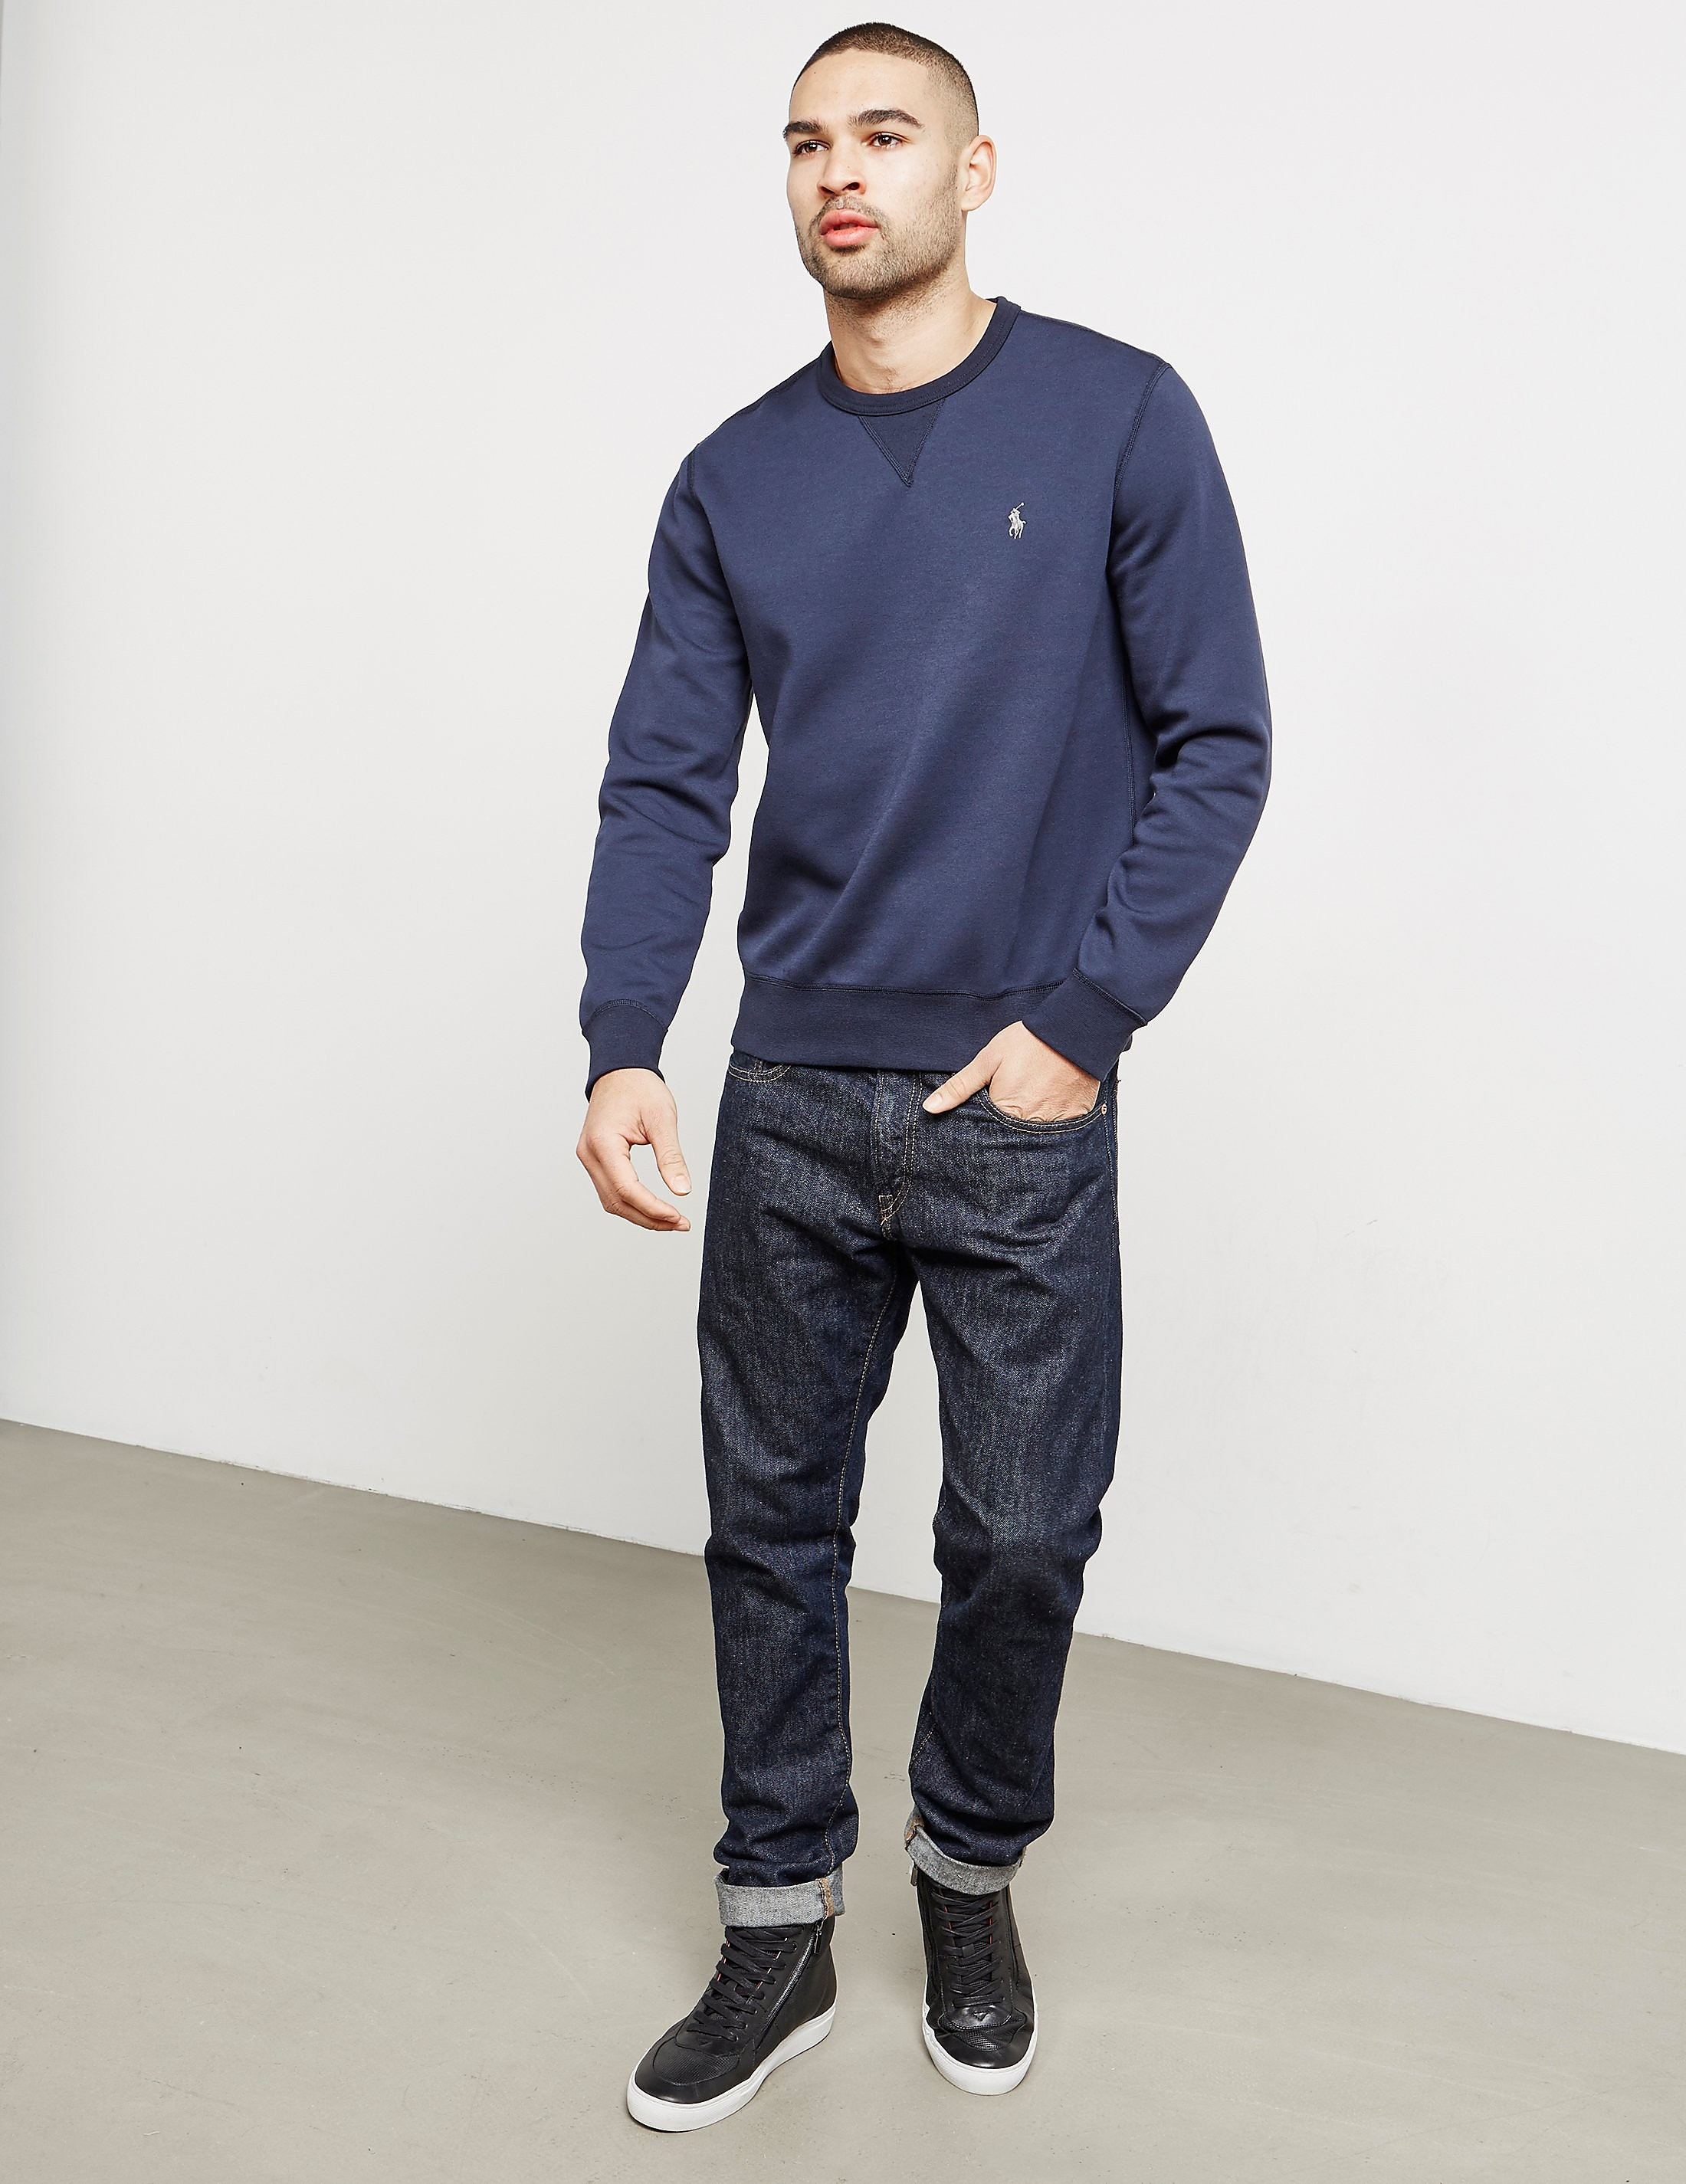 Polo Ralph Lauren Basic Crew Sweatshirt